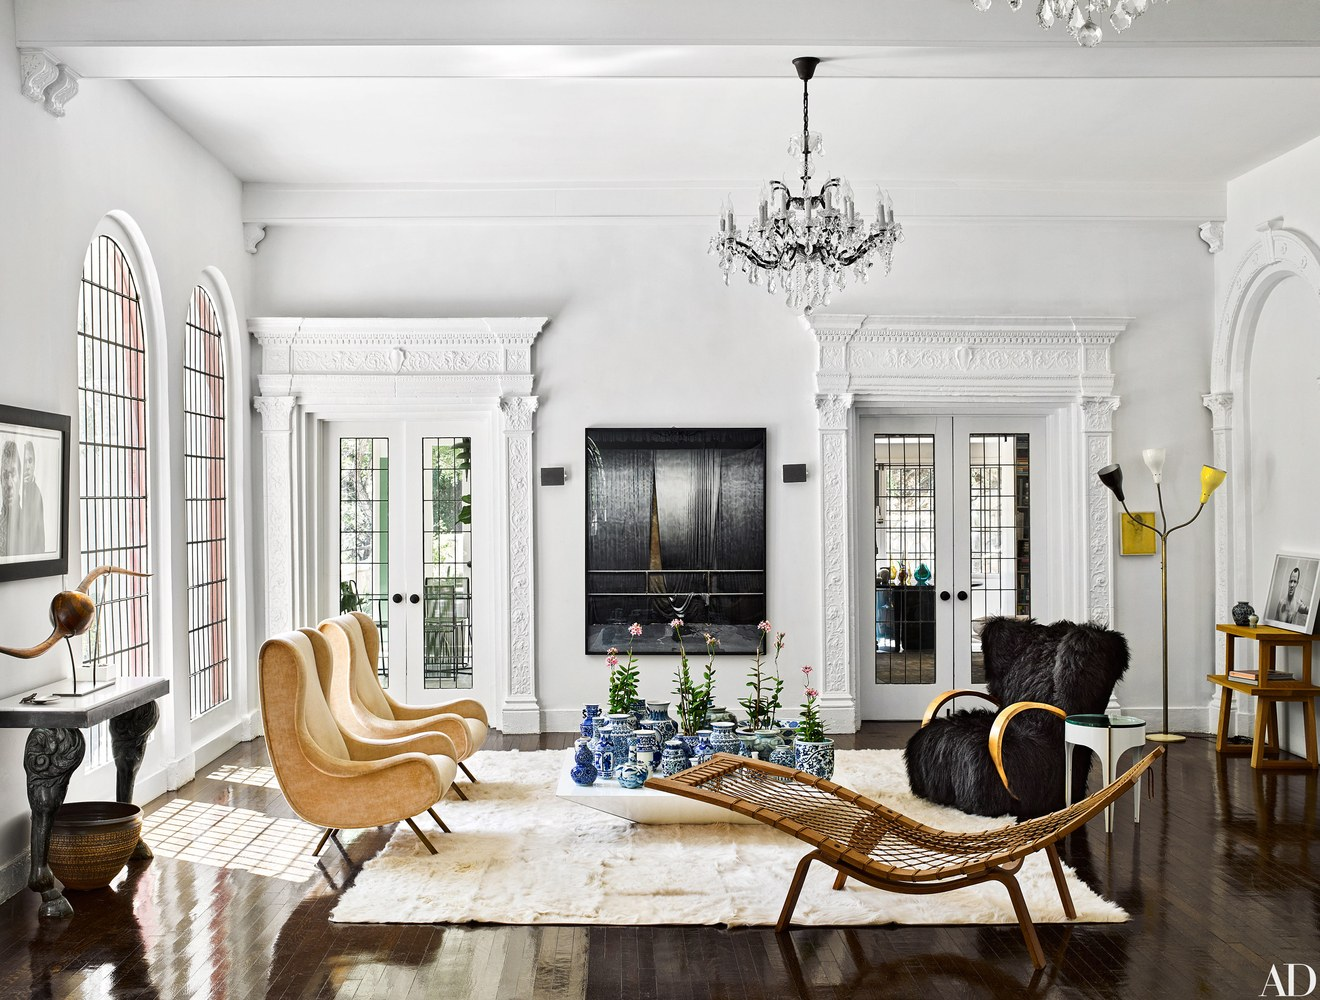 Let's take a look inside the Best Rooms of 2016